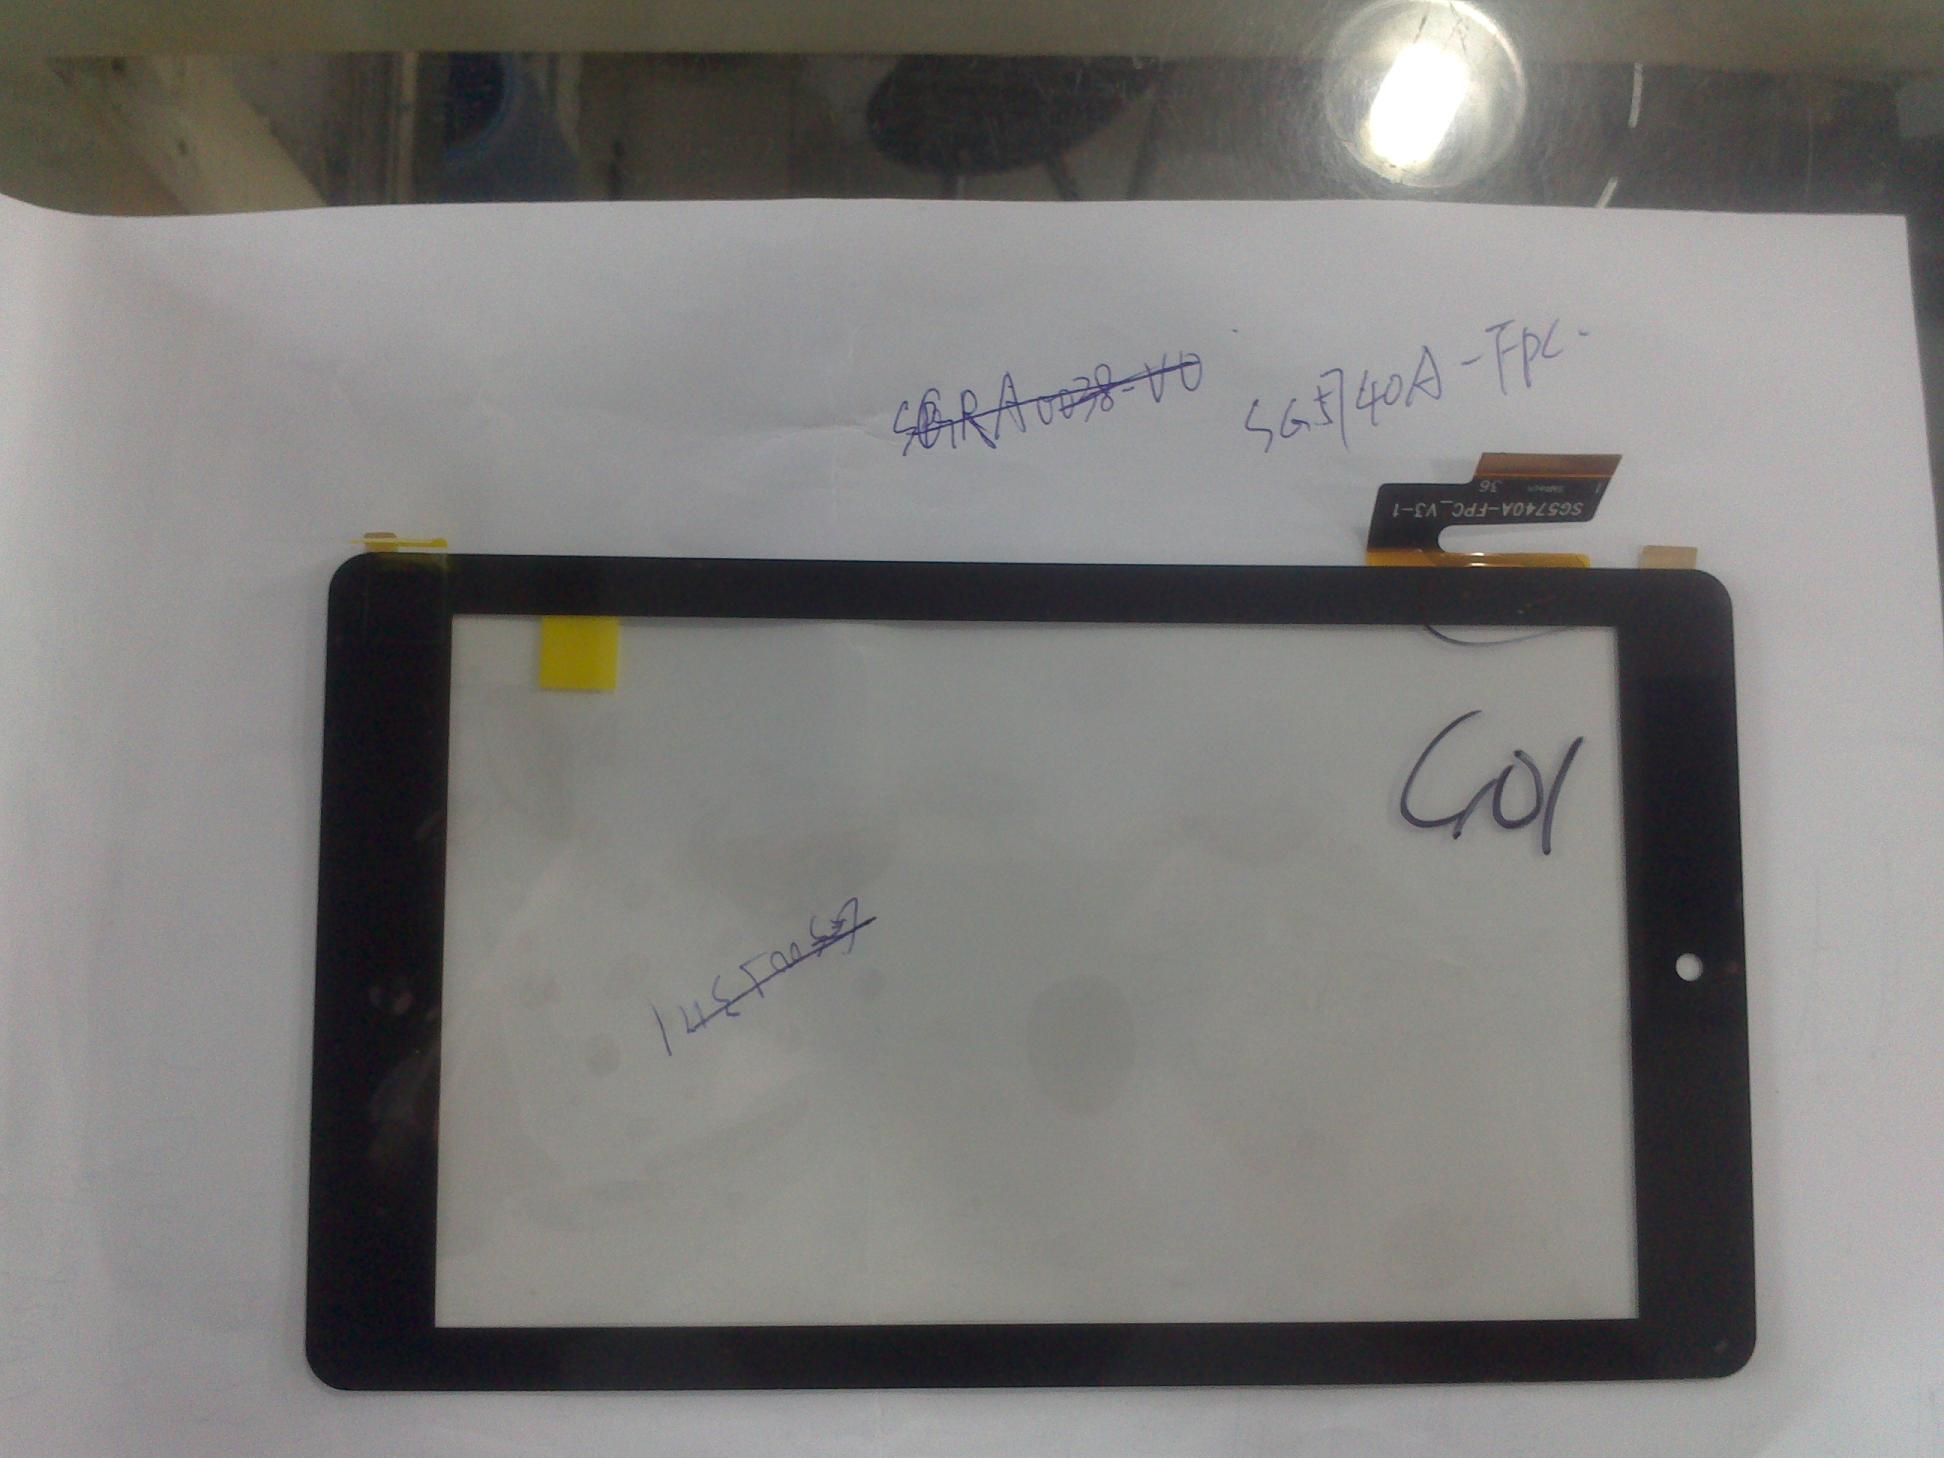 Запчасти для мобильных телефонов 7 inch new handwriting Tablet capacitive touch screen screen screen number is sg5740a/fpc_v3/1  SG5740A-FPC_V3-1 new 10 1 tablet pc for 7214h70262 b0 authentic touch screen handwriting screen multi point capacitive screen external screen